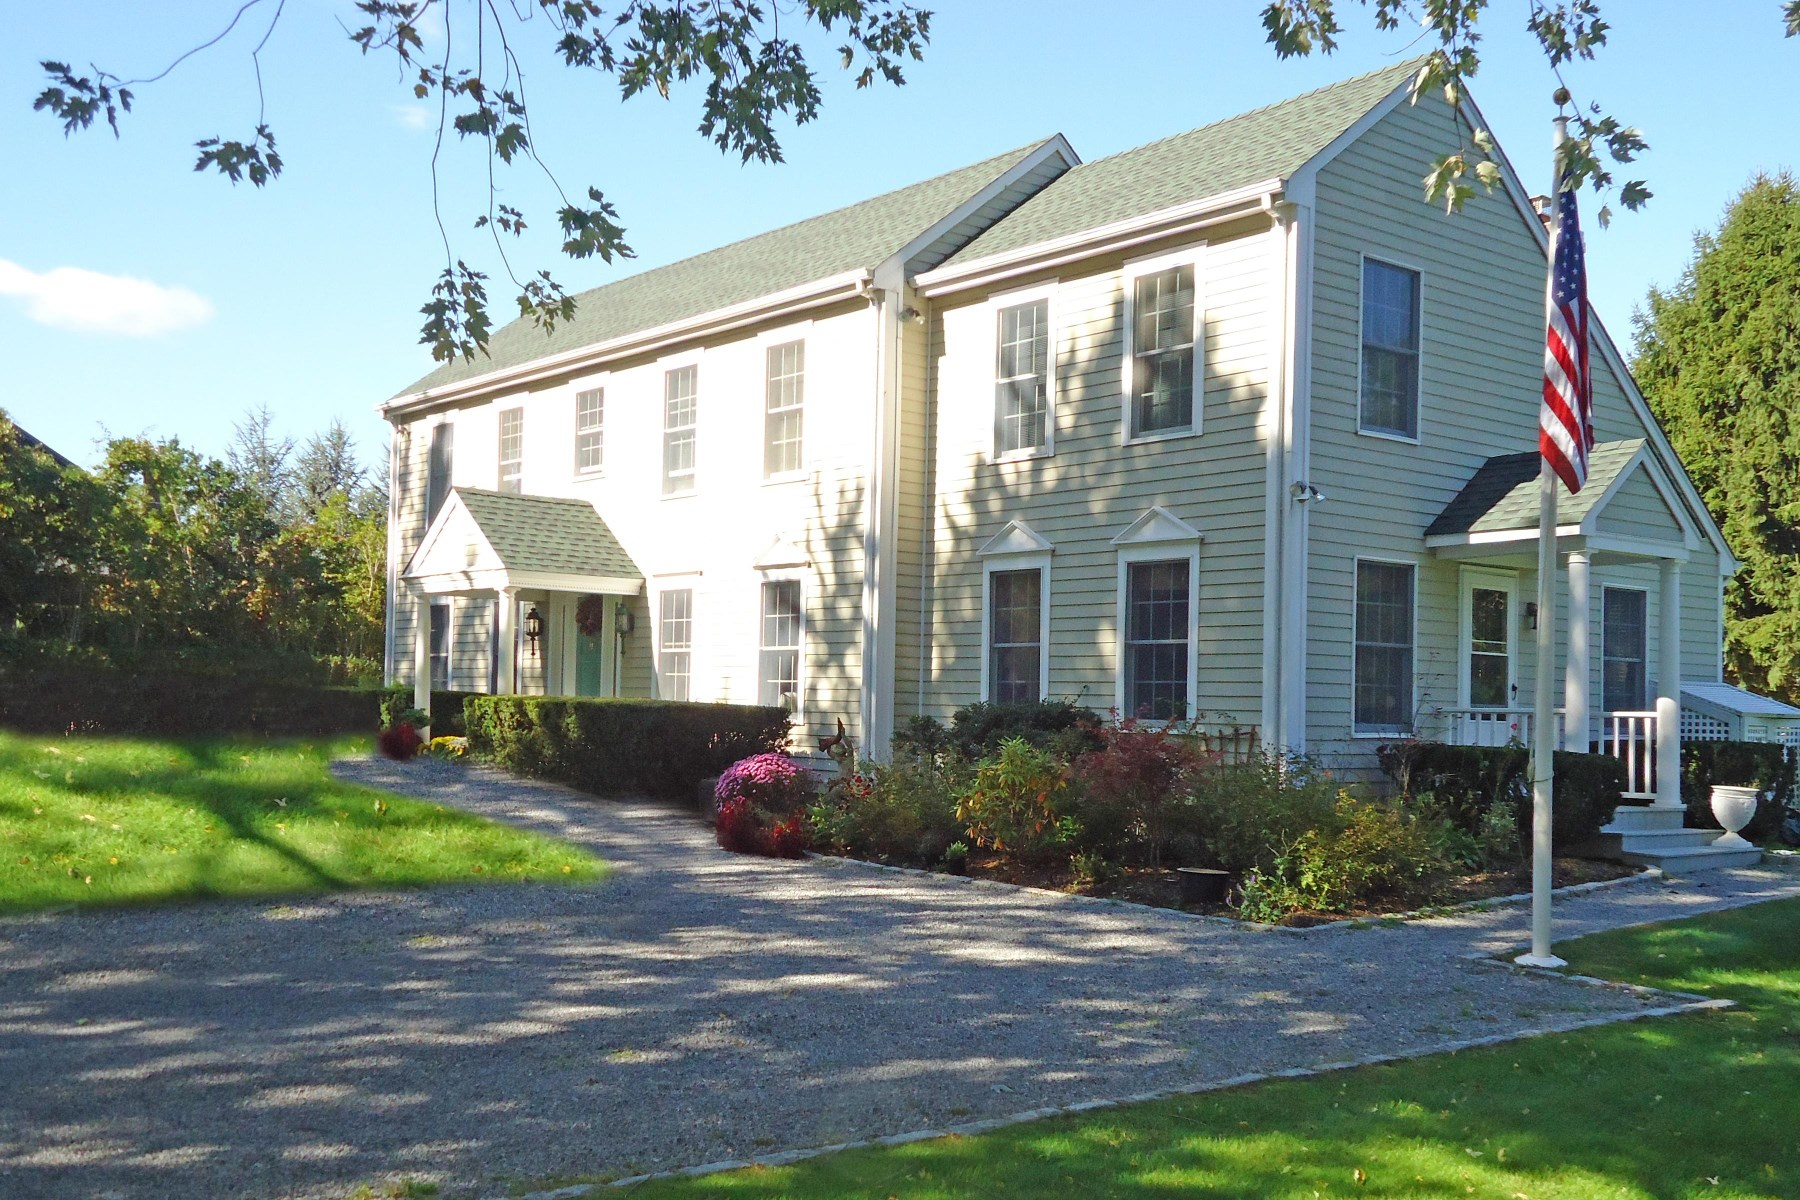 Single Family Home for Rent at Artists Retreat- Village of Southampton Southampton, New York 11968 United States